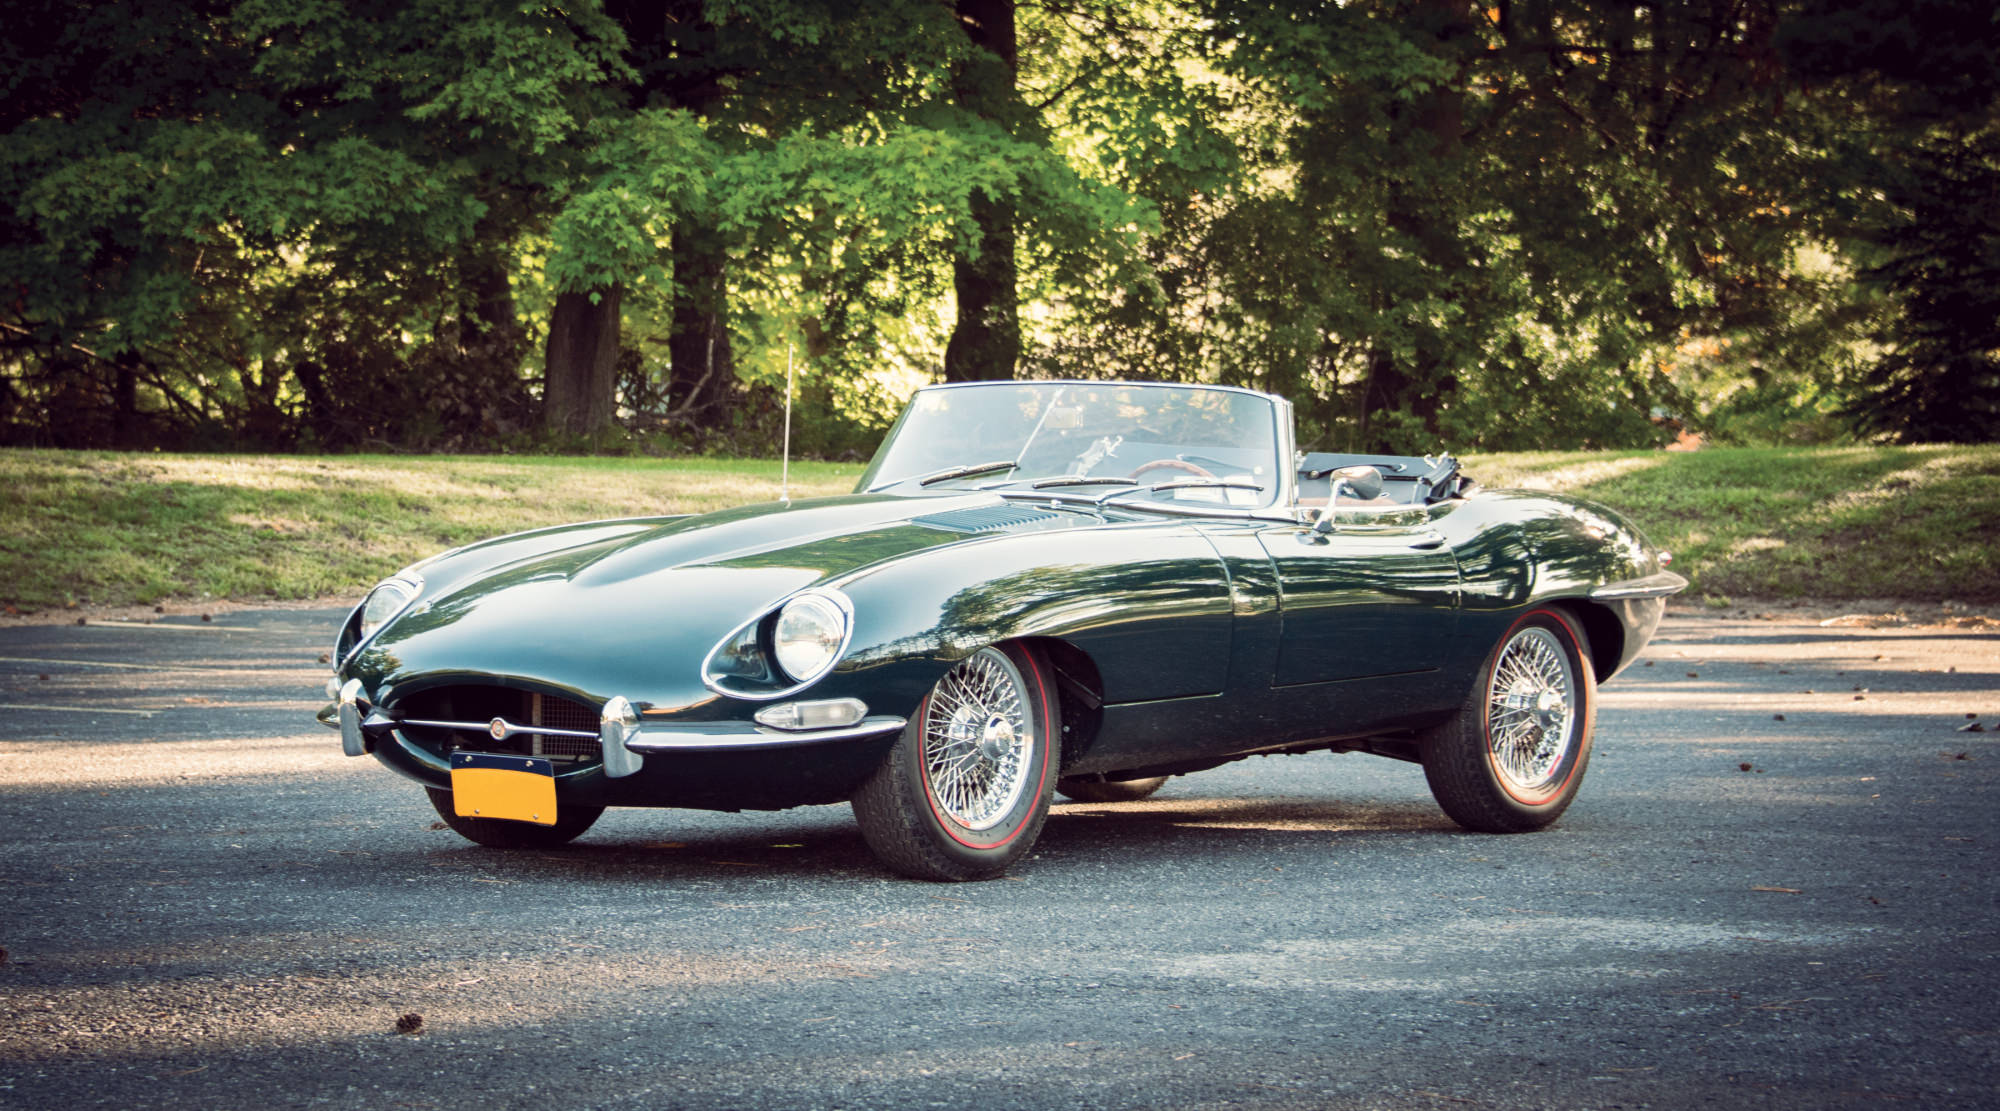 jaguar e type series 1 roadster silodrome. Black Bedroom Furniture Sets. Home Design Ideas